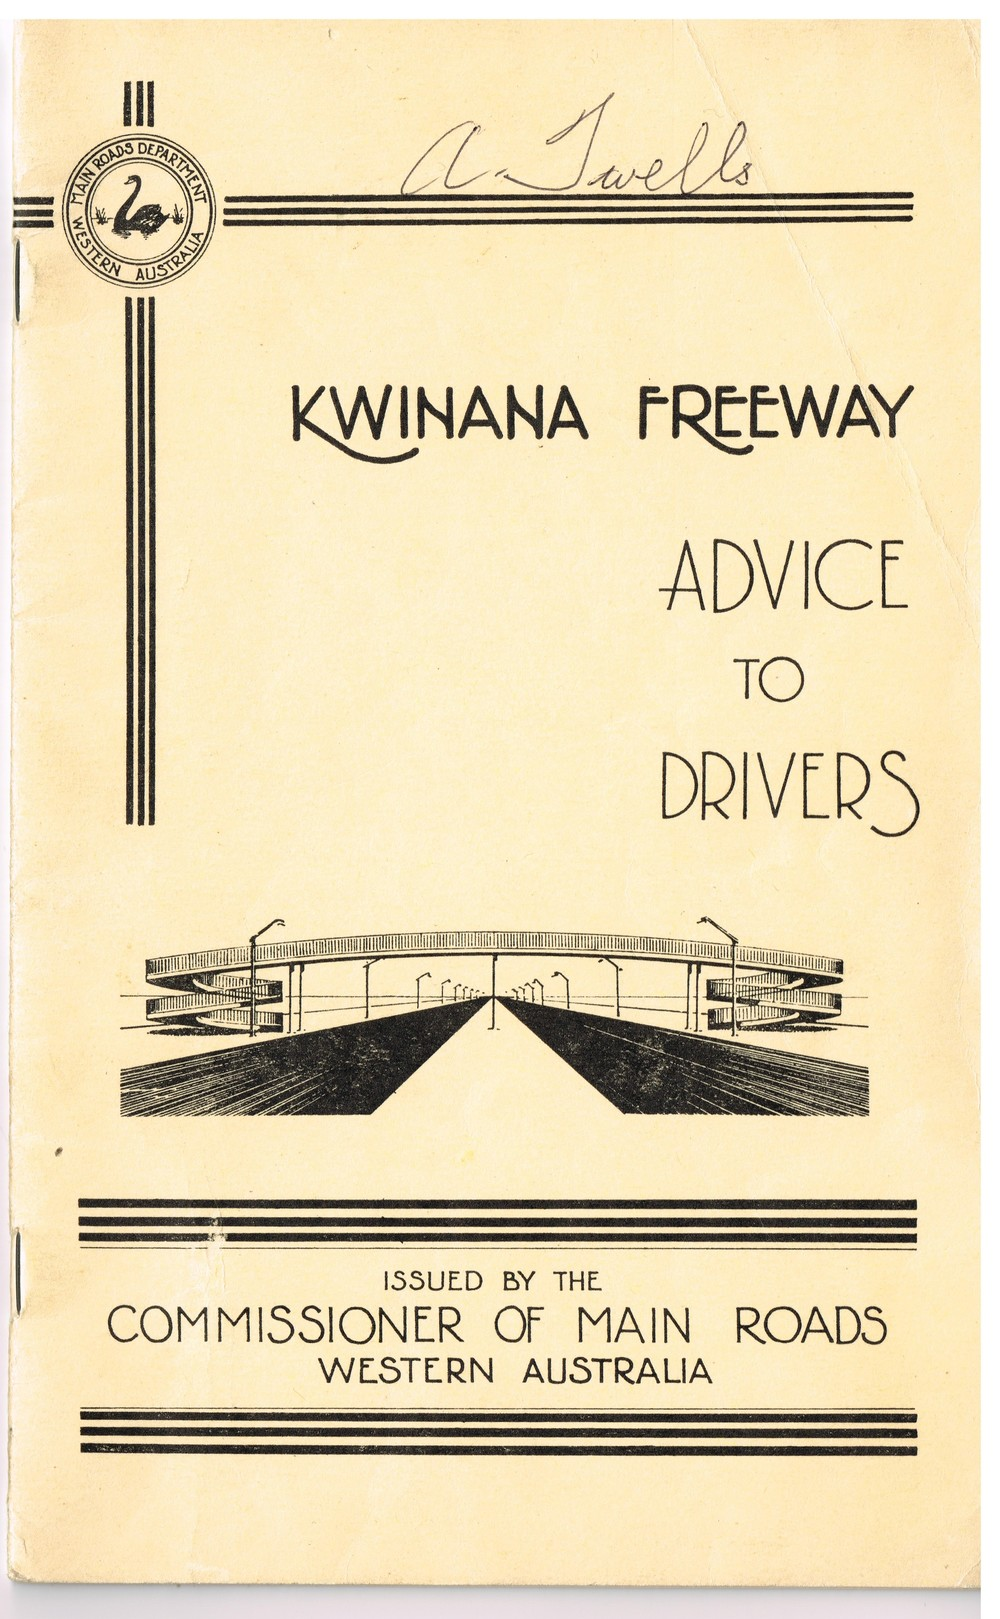 Kwinana-Freeway-Advice-to-Drivers